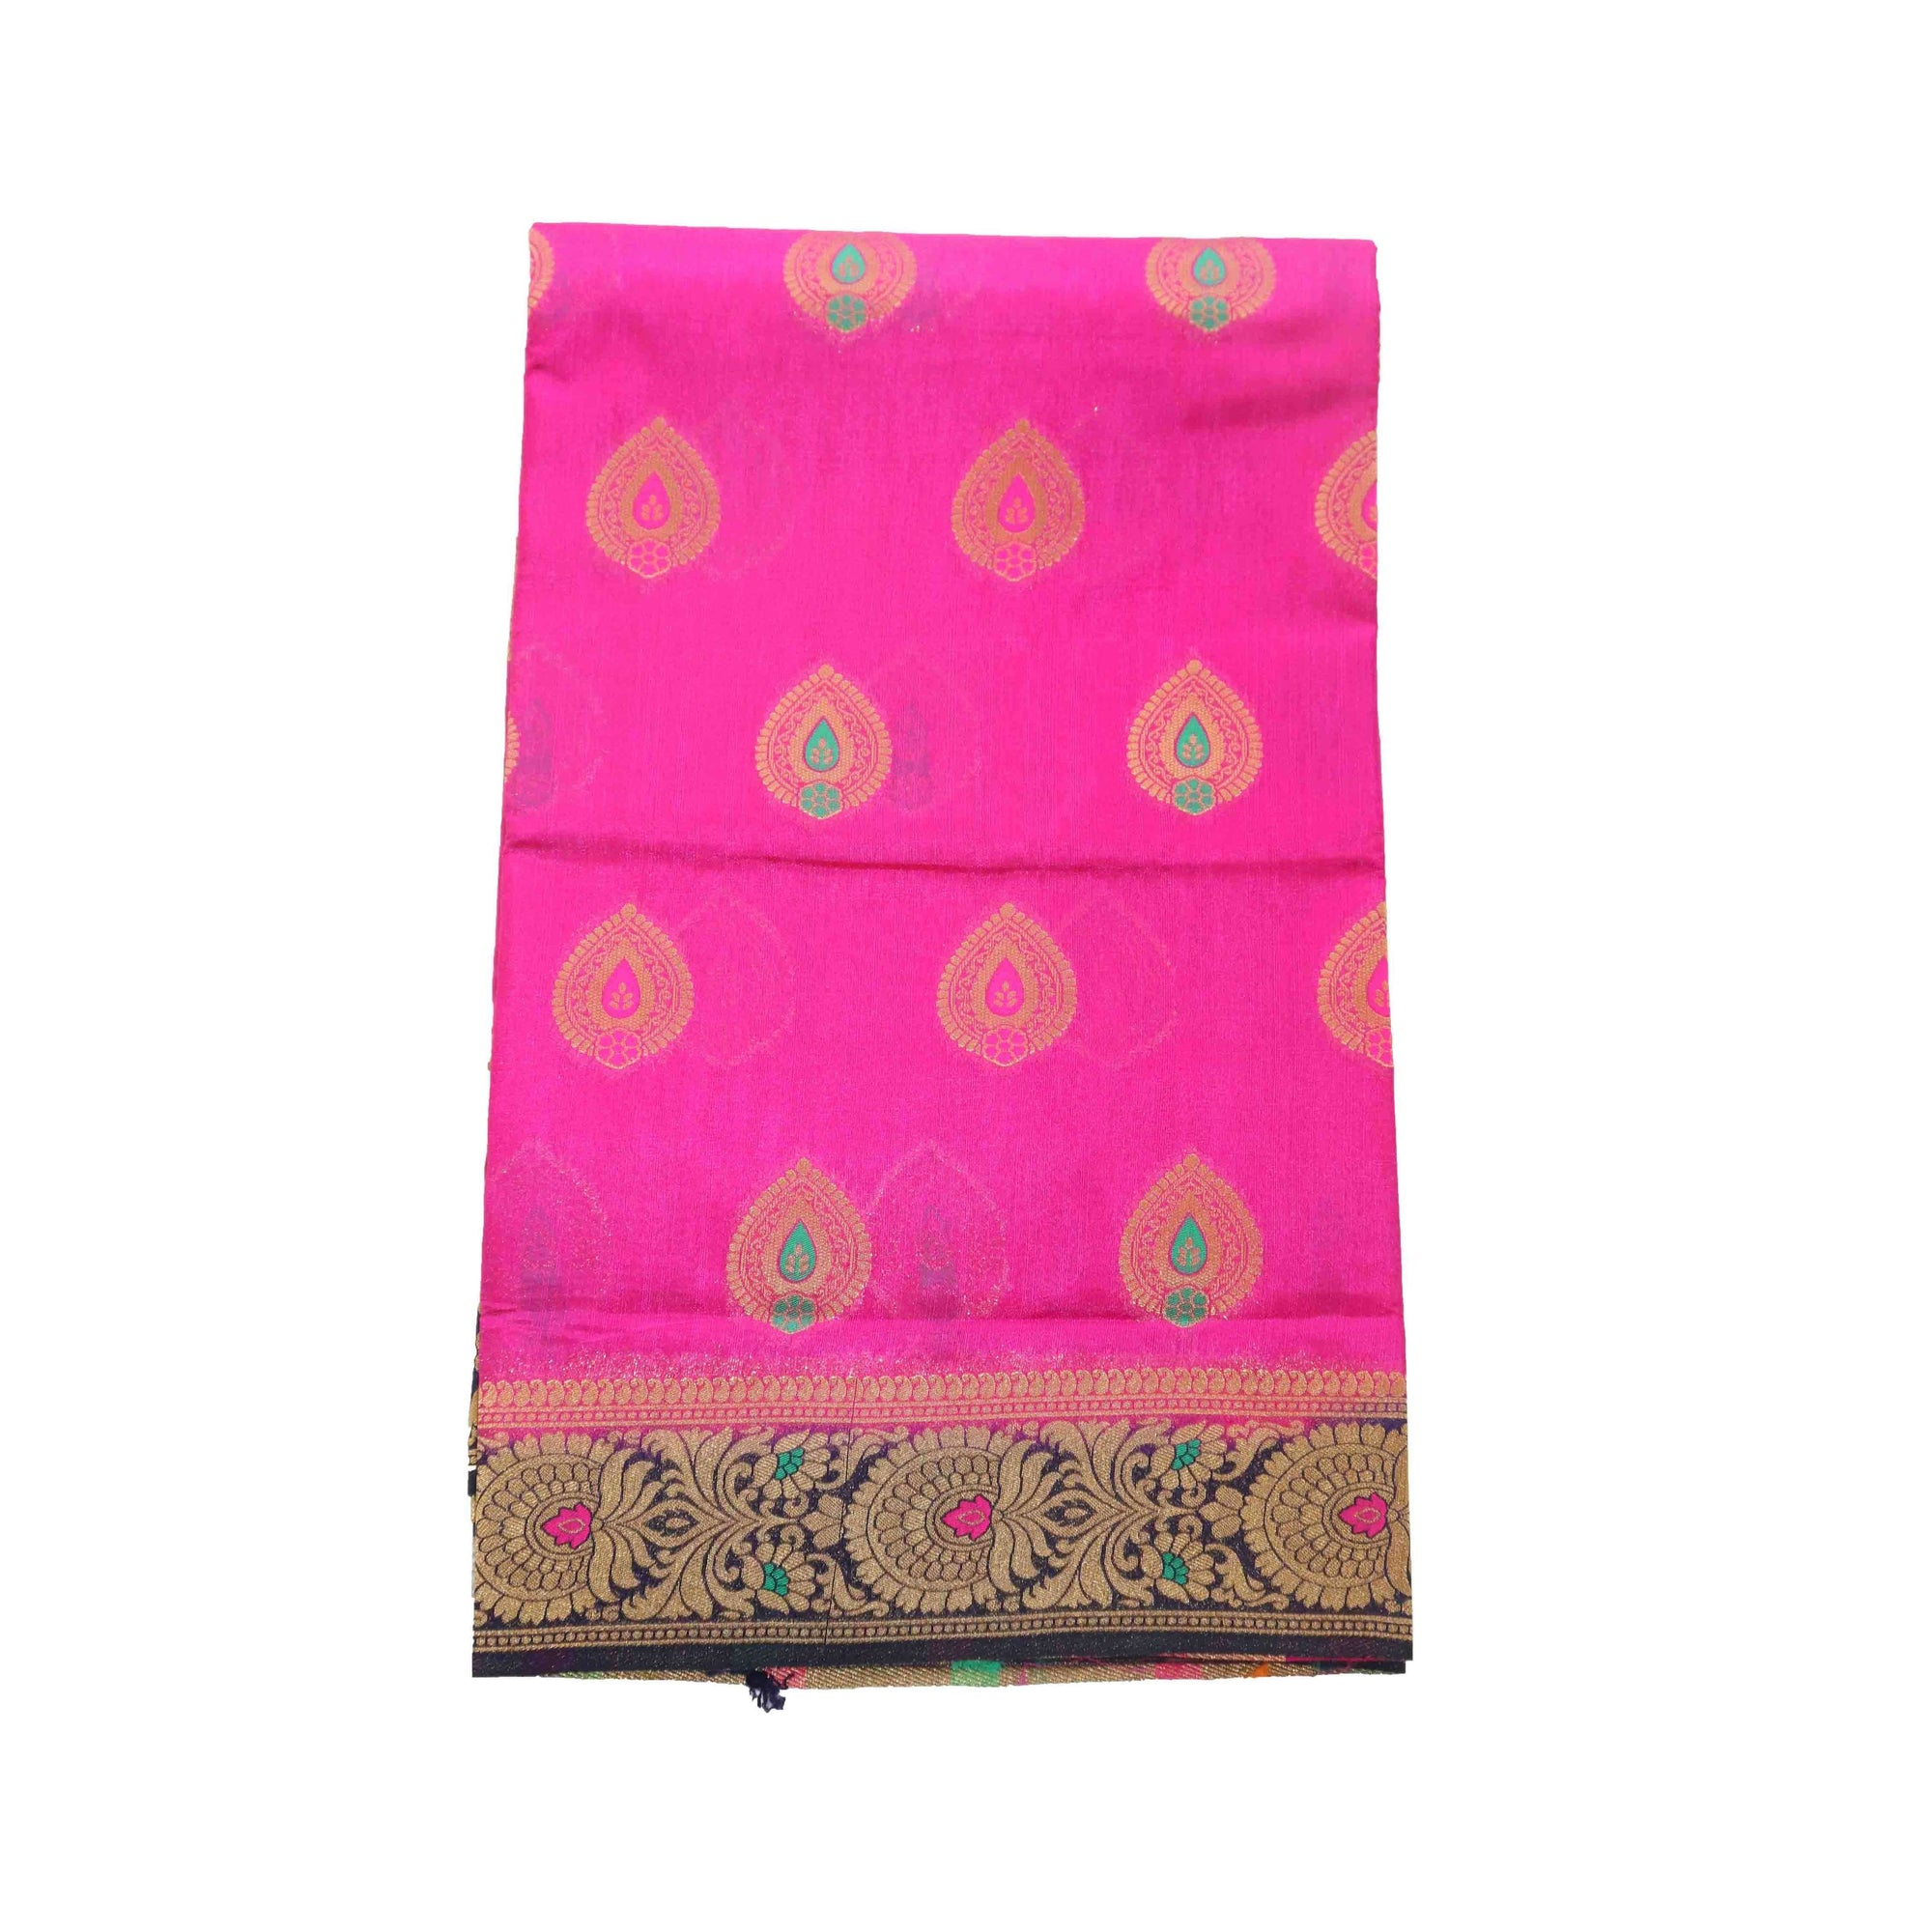 arars Women's kanchipuram kanjivaram pattu rapier butta paithani silk saree with blouse (475, rani)